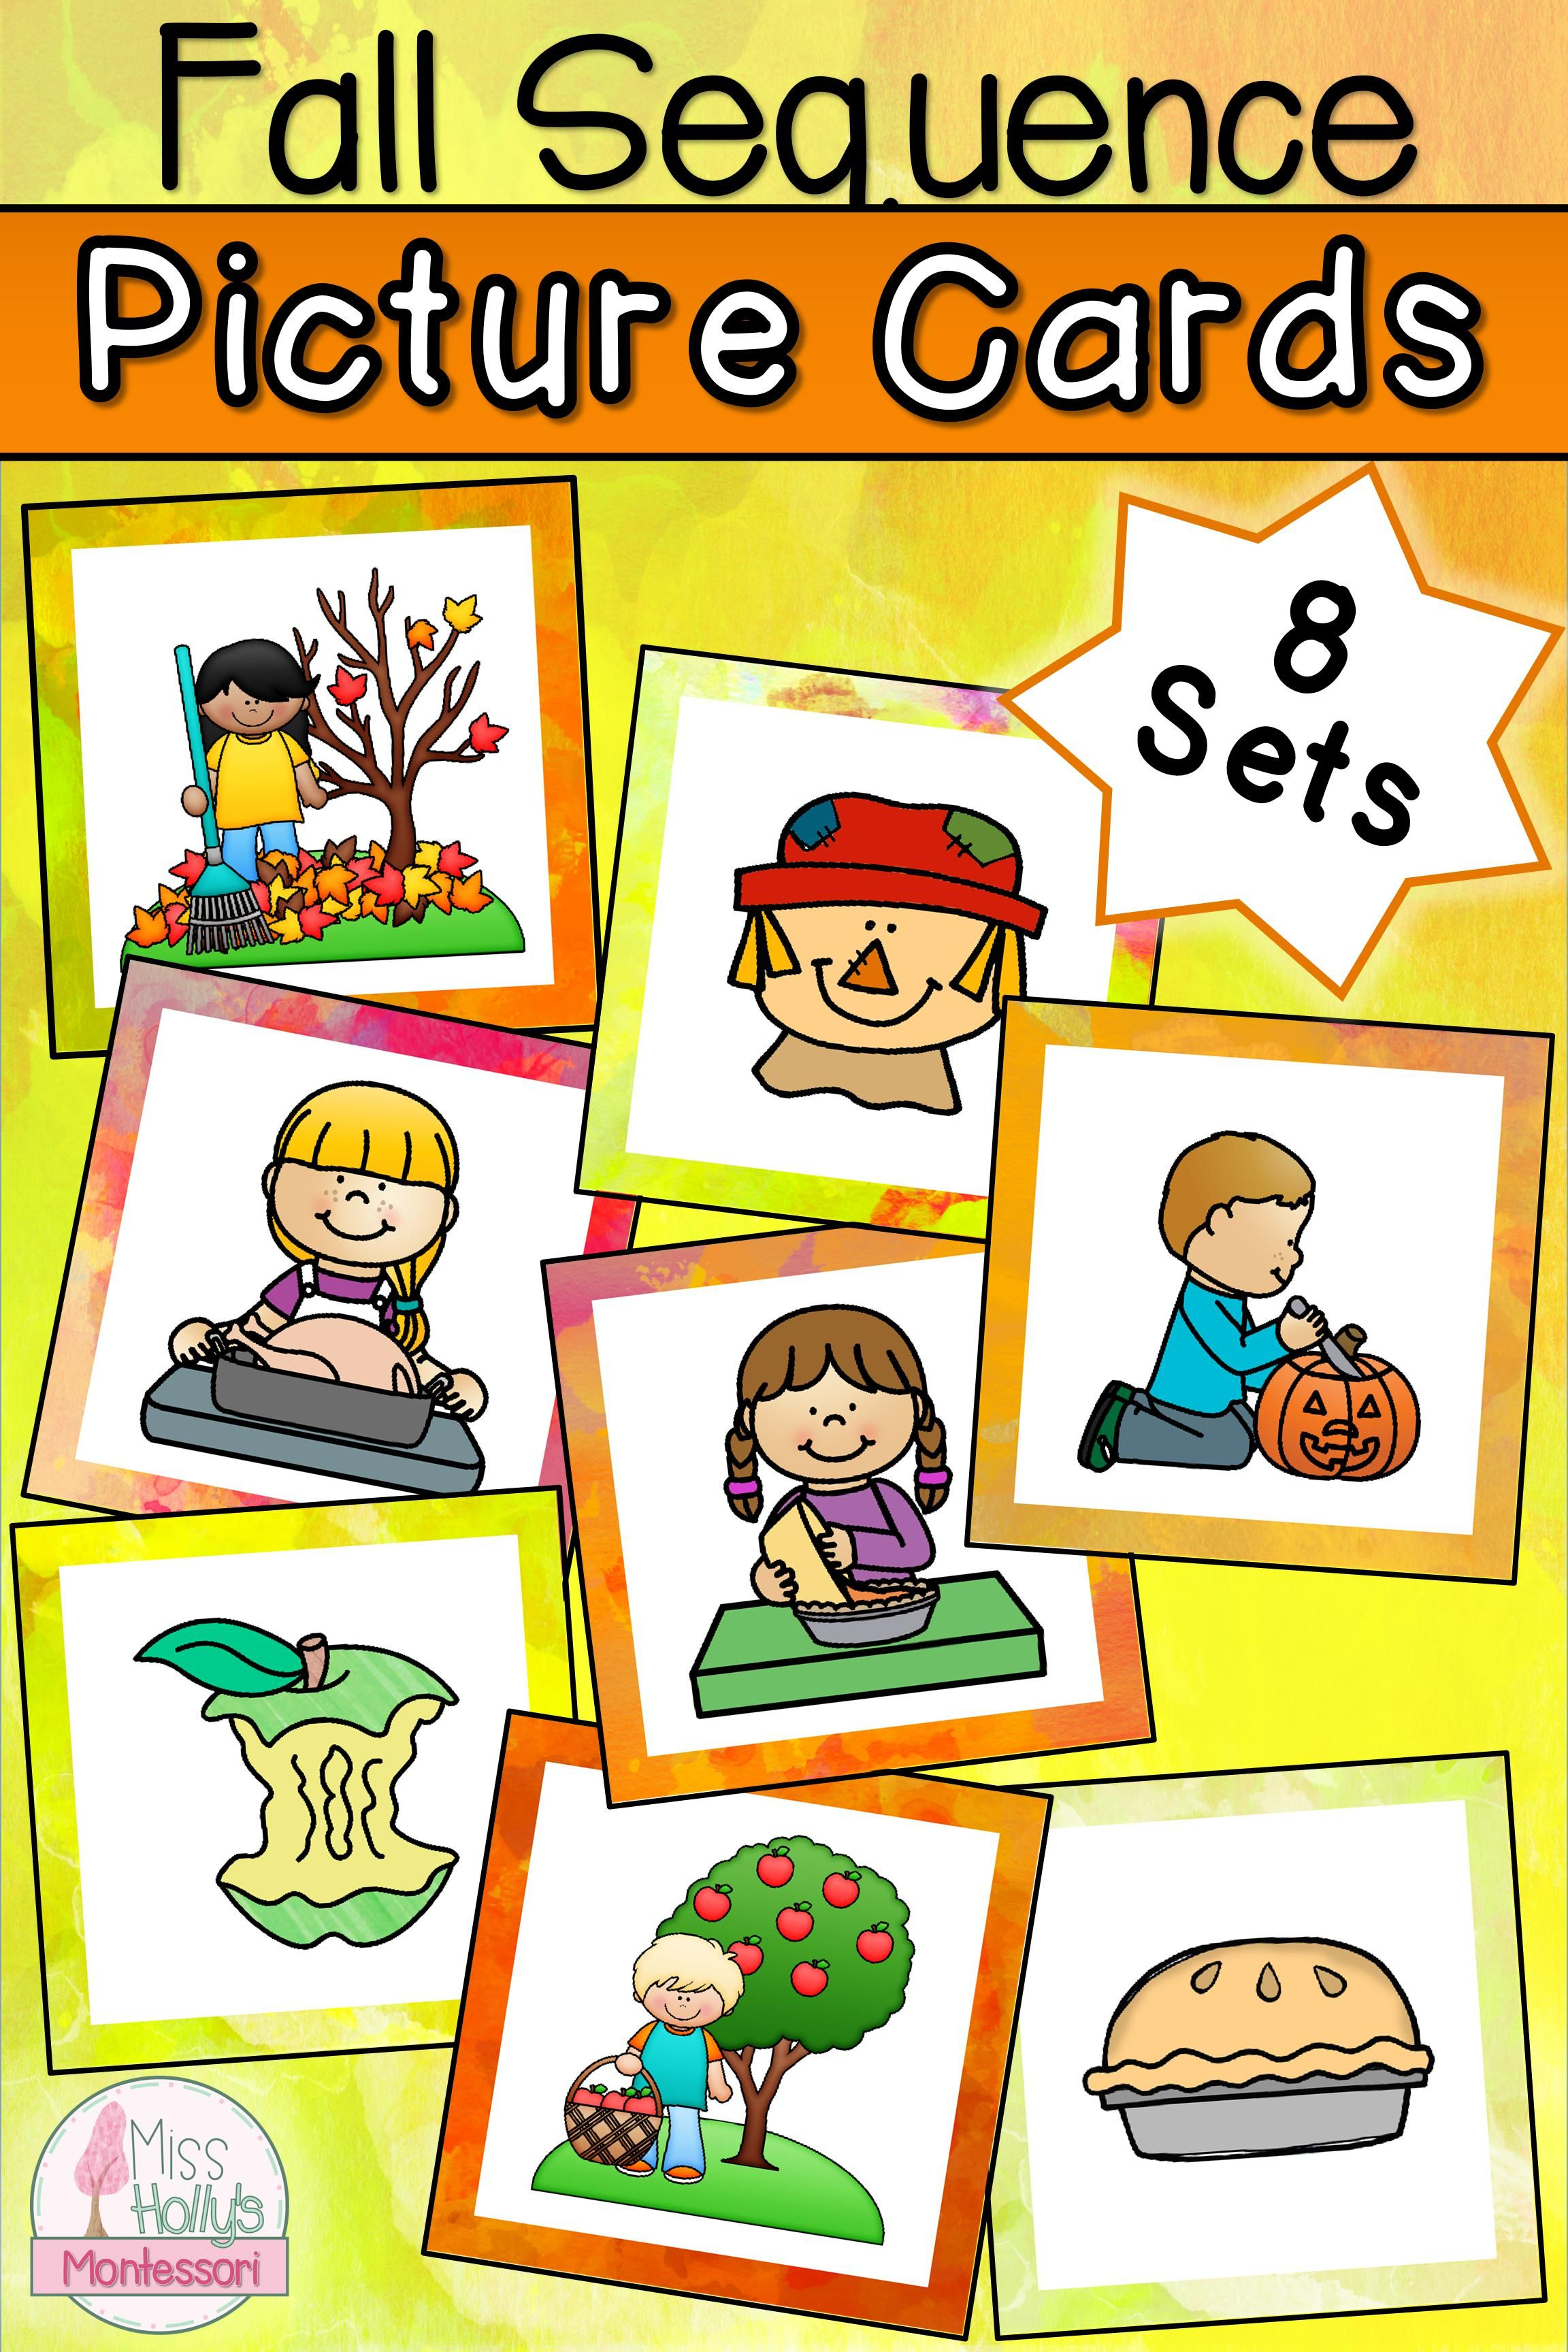 Fall Sequencing Picture Cards